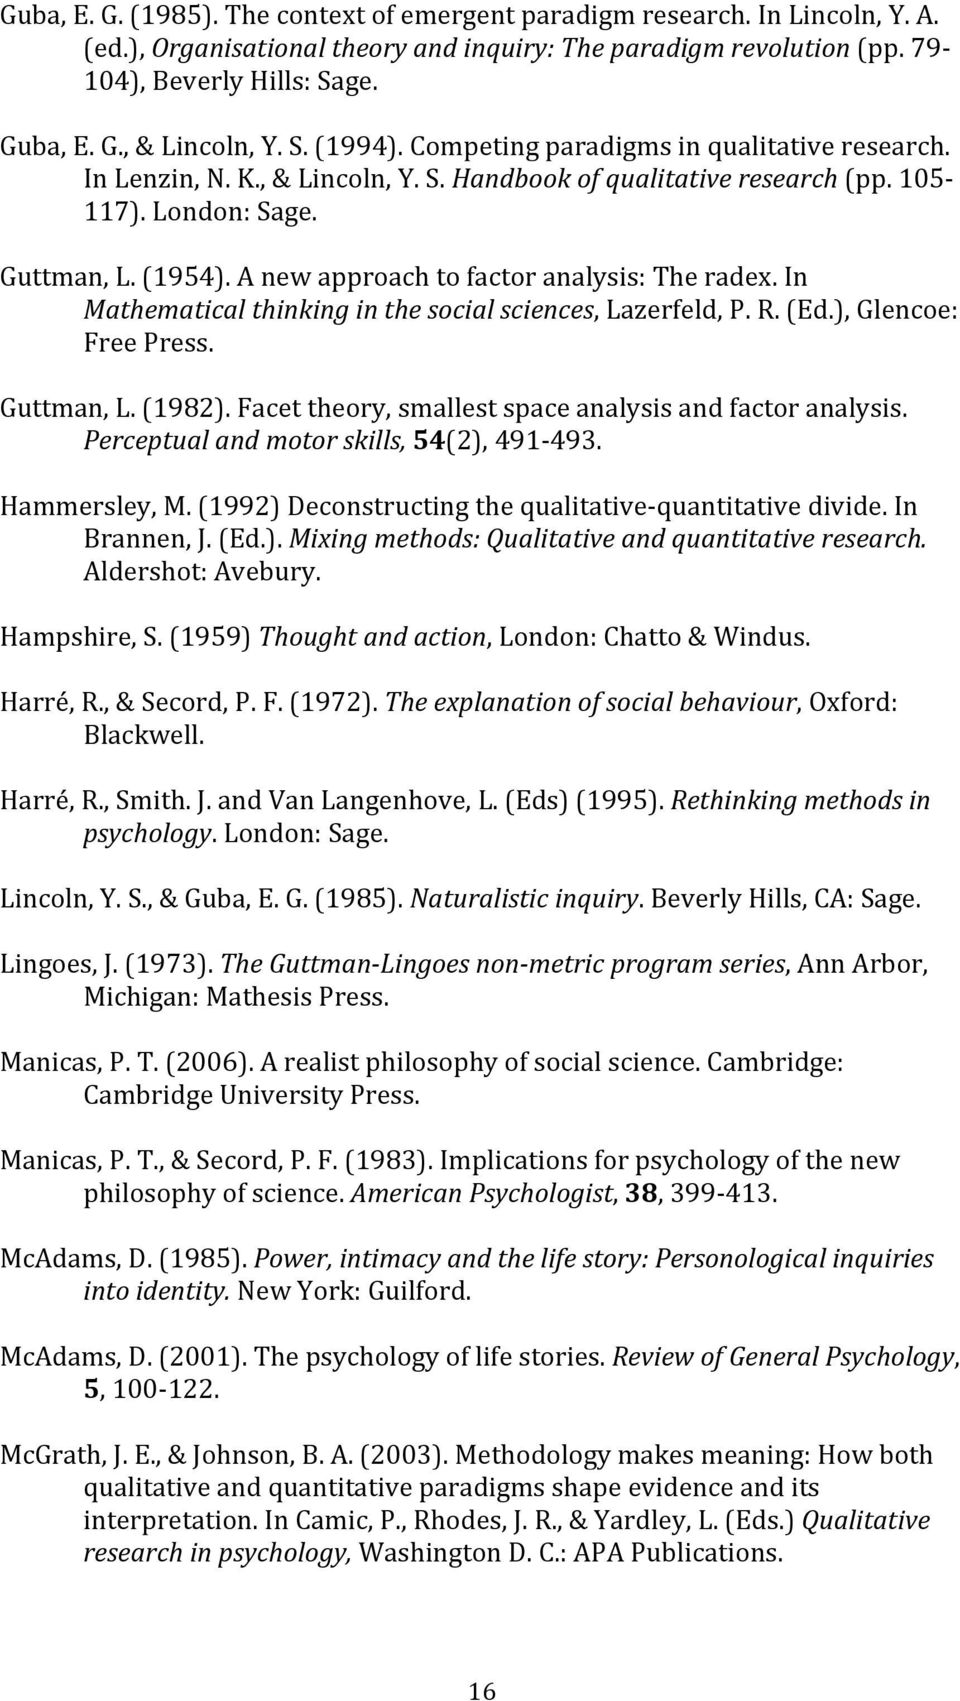 In Mathematicalthinkinginthesocialsciences,Lazerfeld,P.R.(Ed.),Glencoe: FreePress. Guttman,L.(1982).Facettheory,smallestspaceanalysisandfactoranalysis. Perceptualandmotorskills,54(2),491 493.